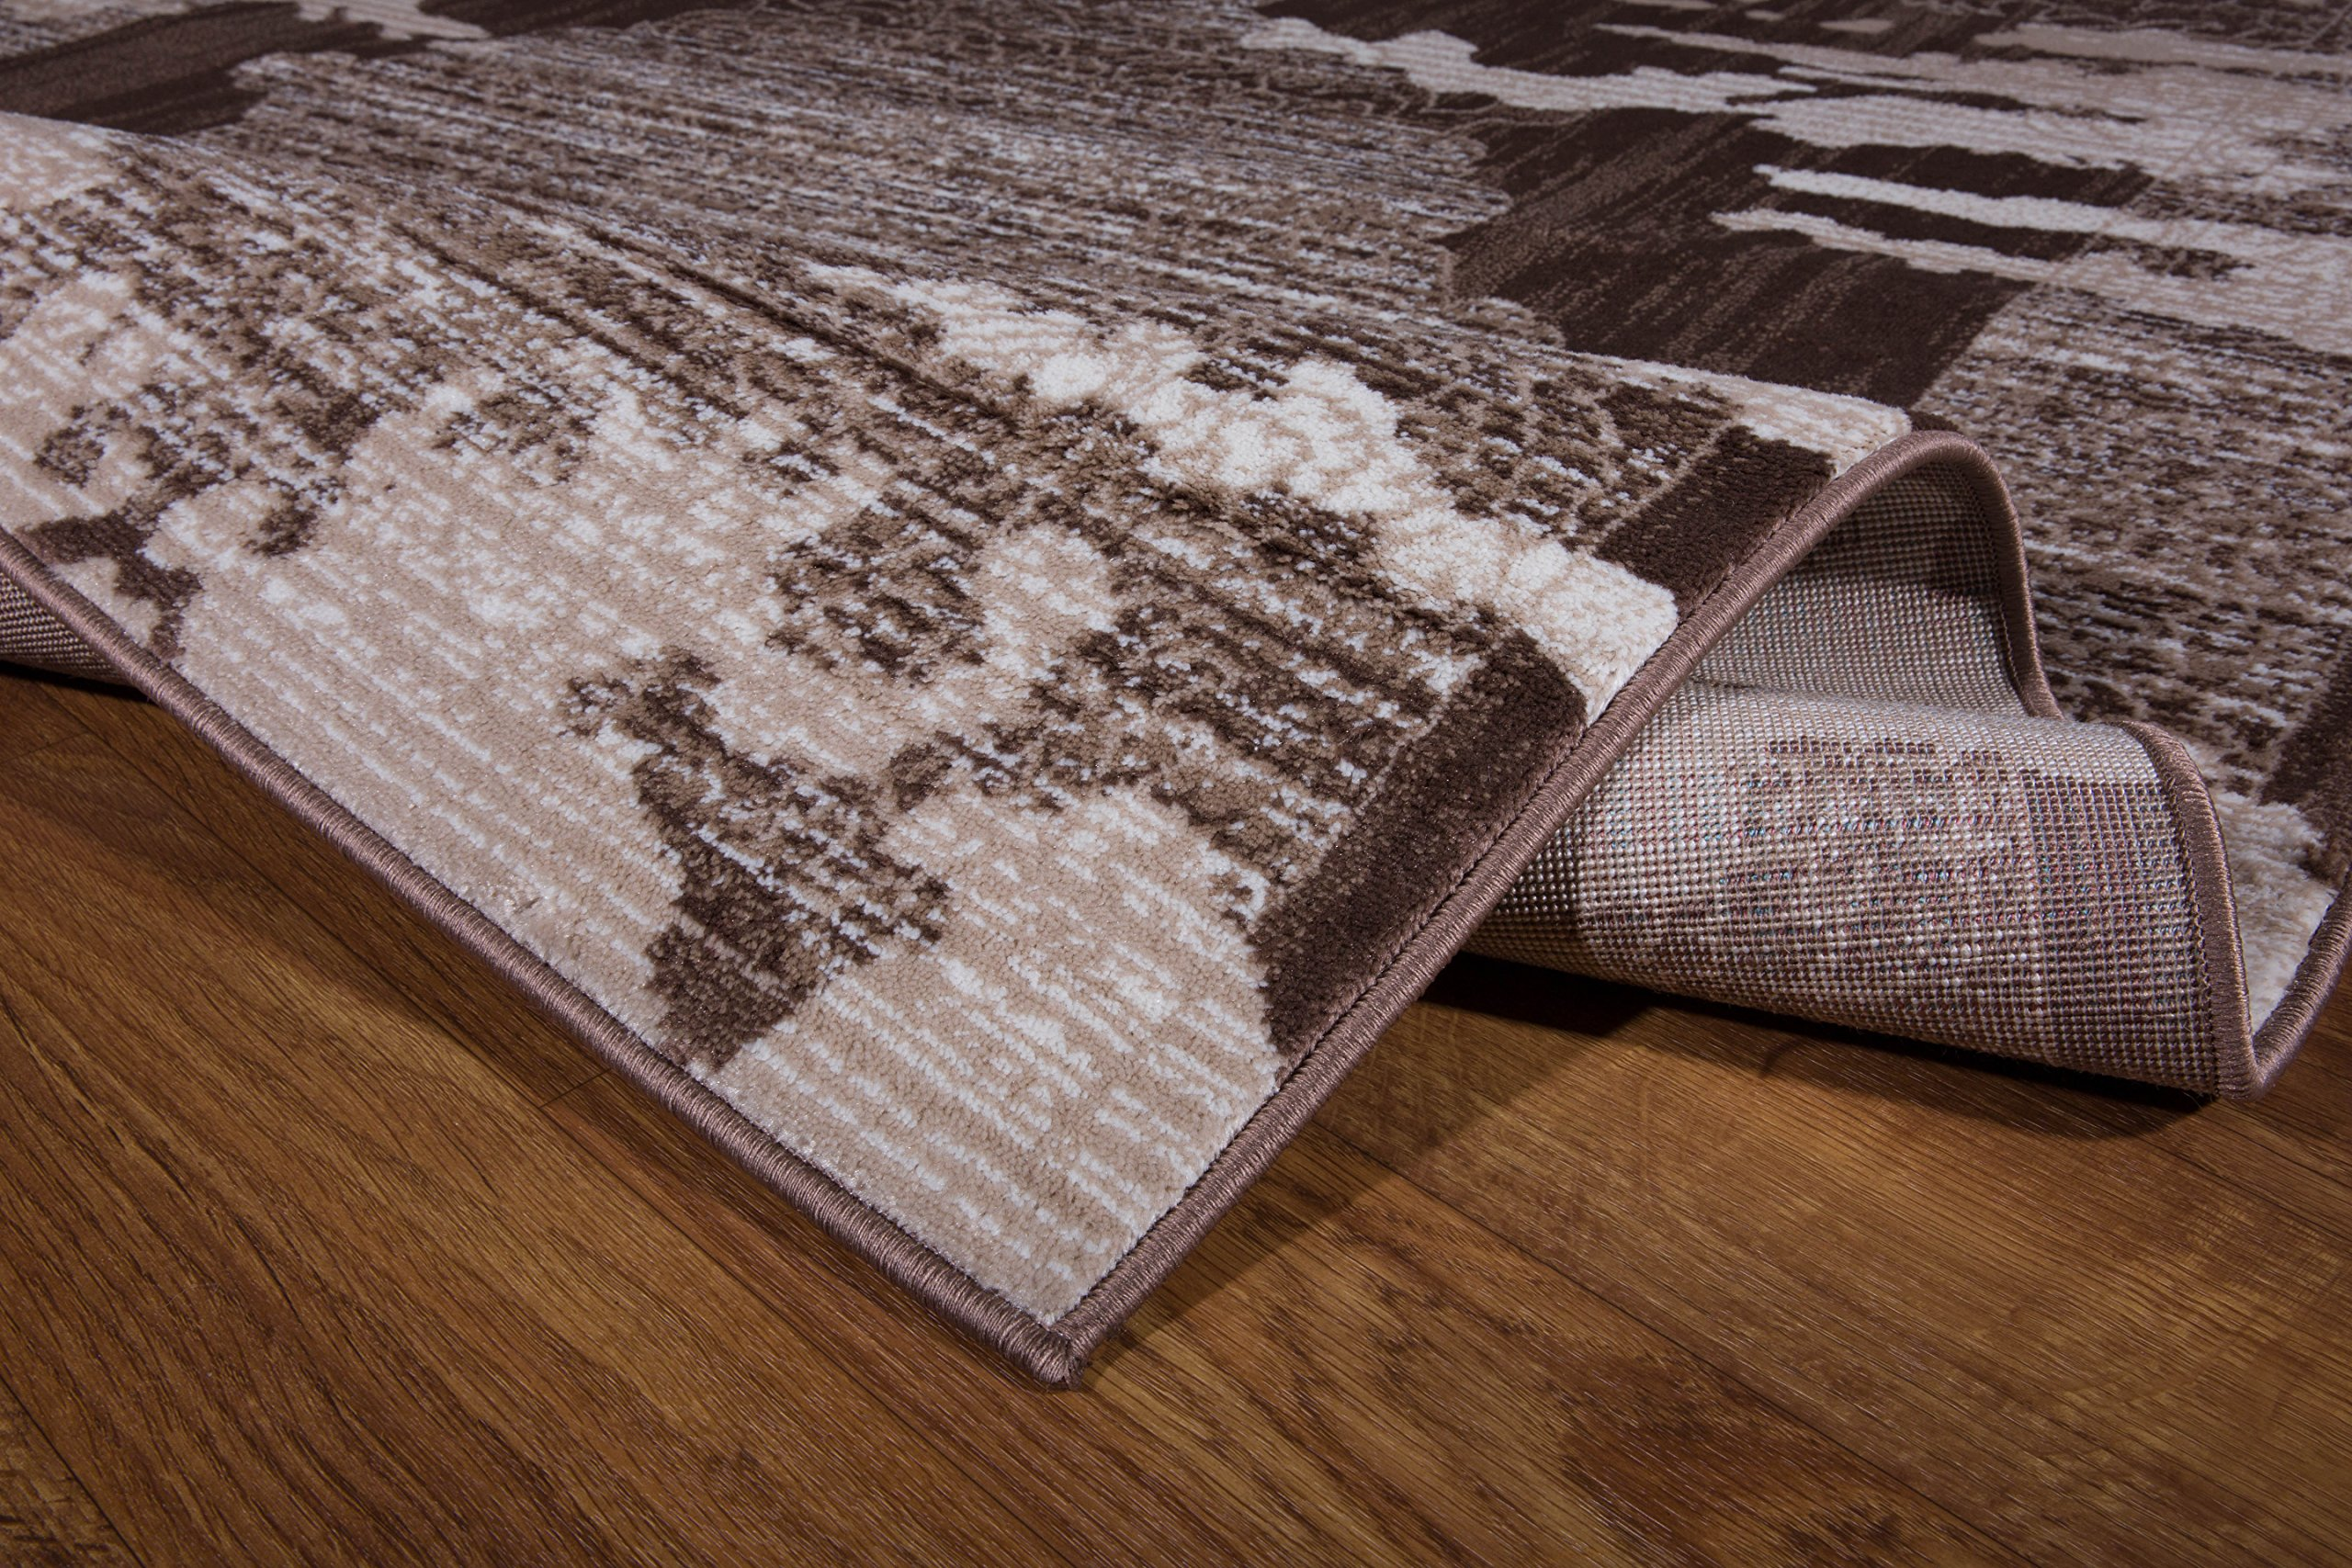 Antep Rugs Zeugma Collection Vintage Area Rug 288-Brown Beige 7'10 X 10' by Antep Rugs (Image #3)